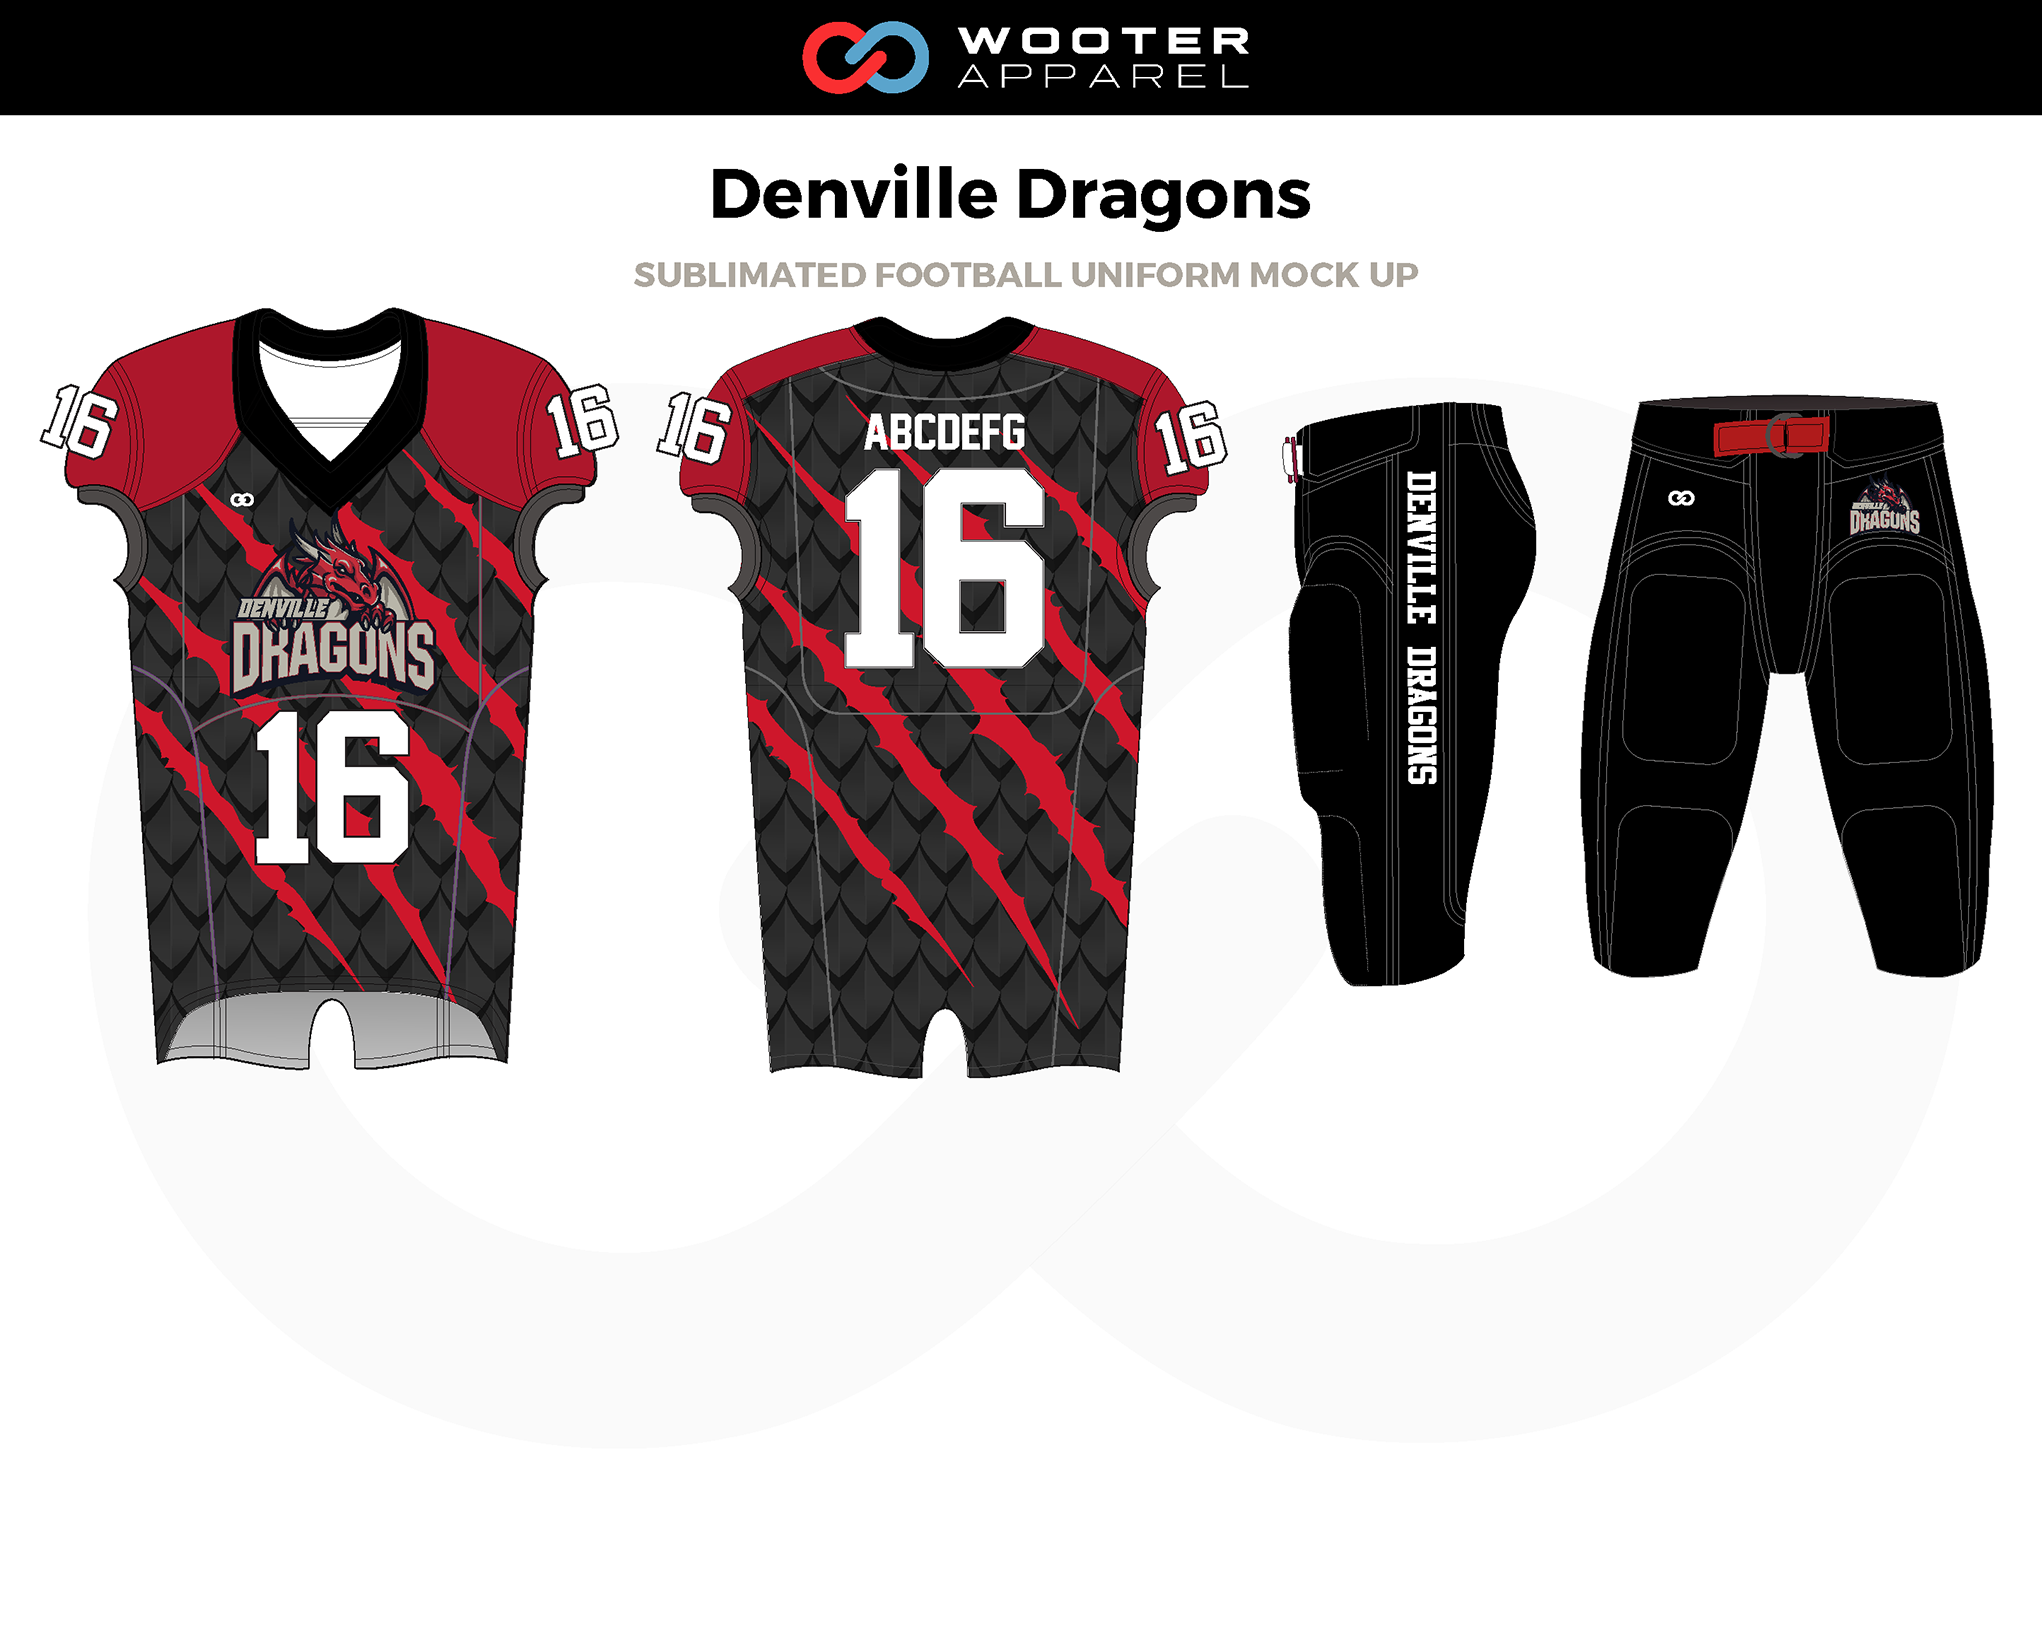 denville dragons_Page_1.png